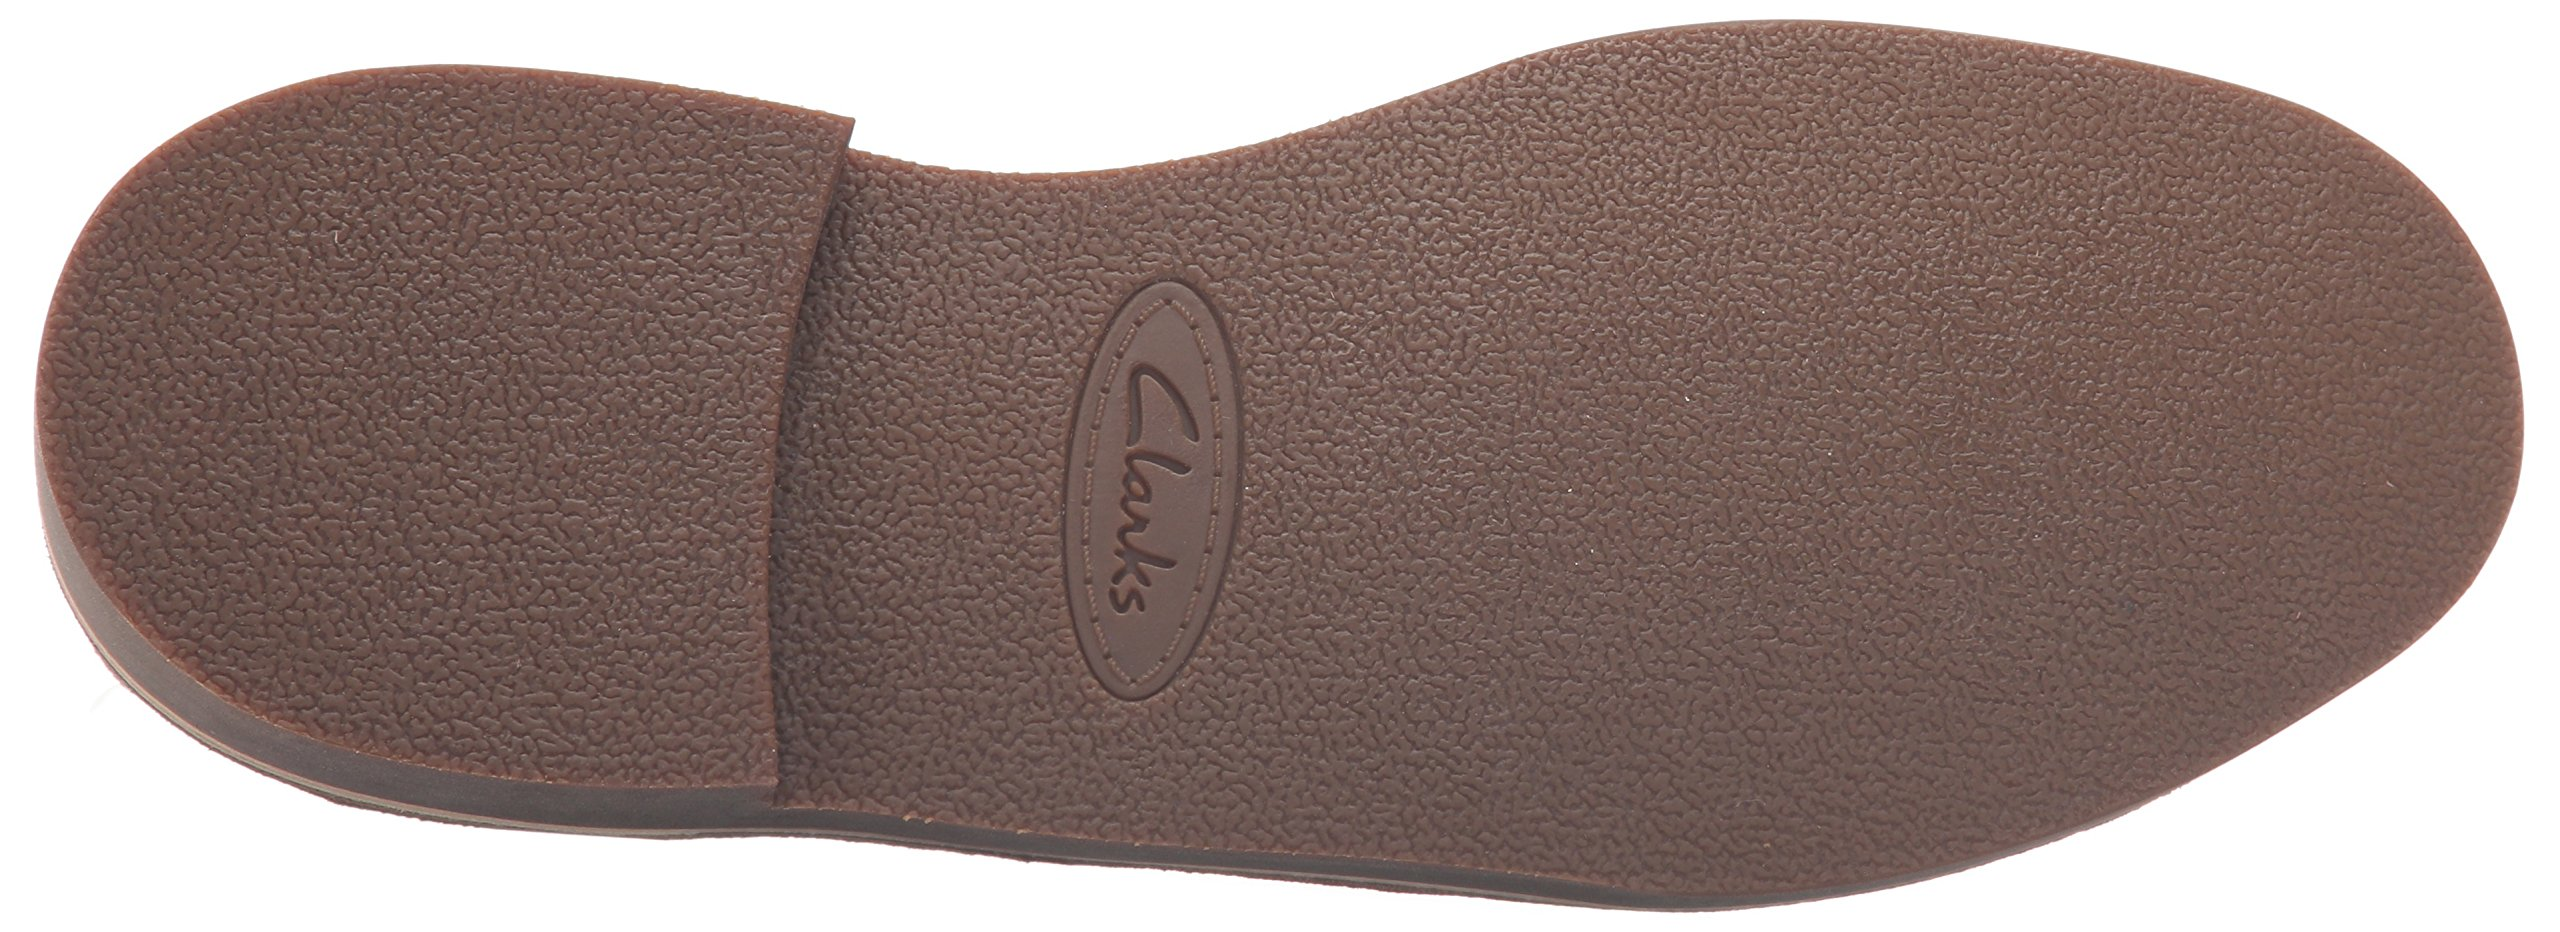 Clarks Men's Bushacre 2 Chukka Boot,Sand Sable,10 M US by CLARKS (Image #3)